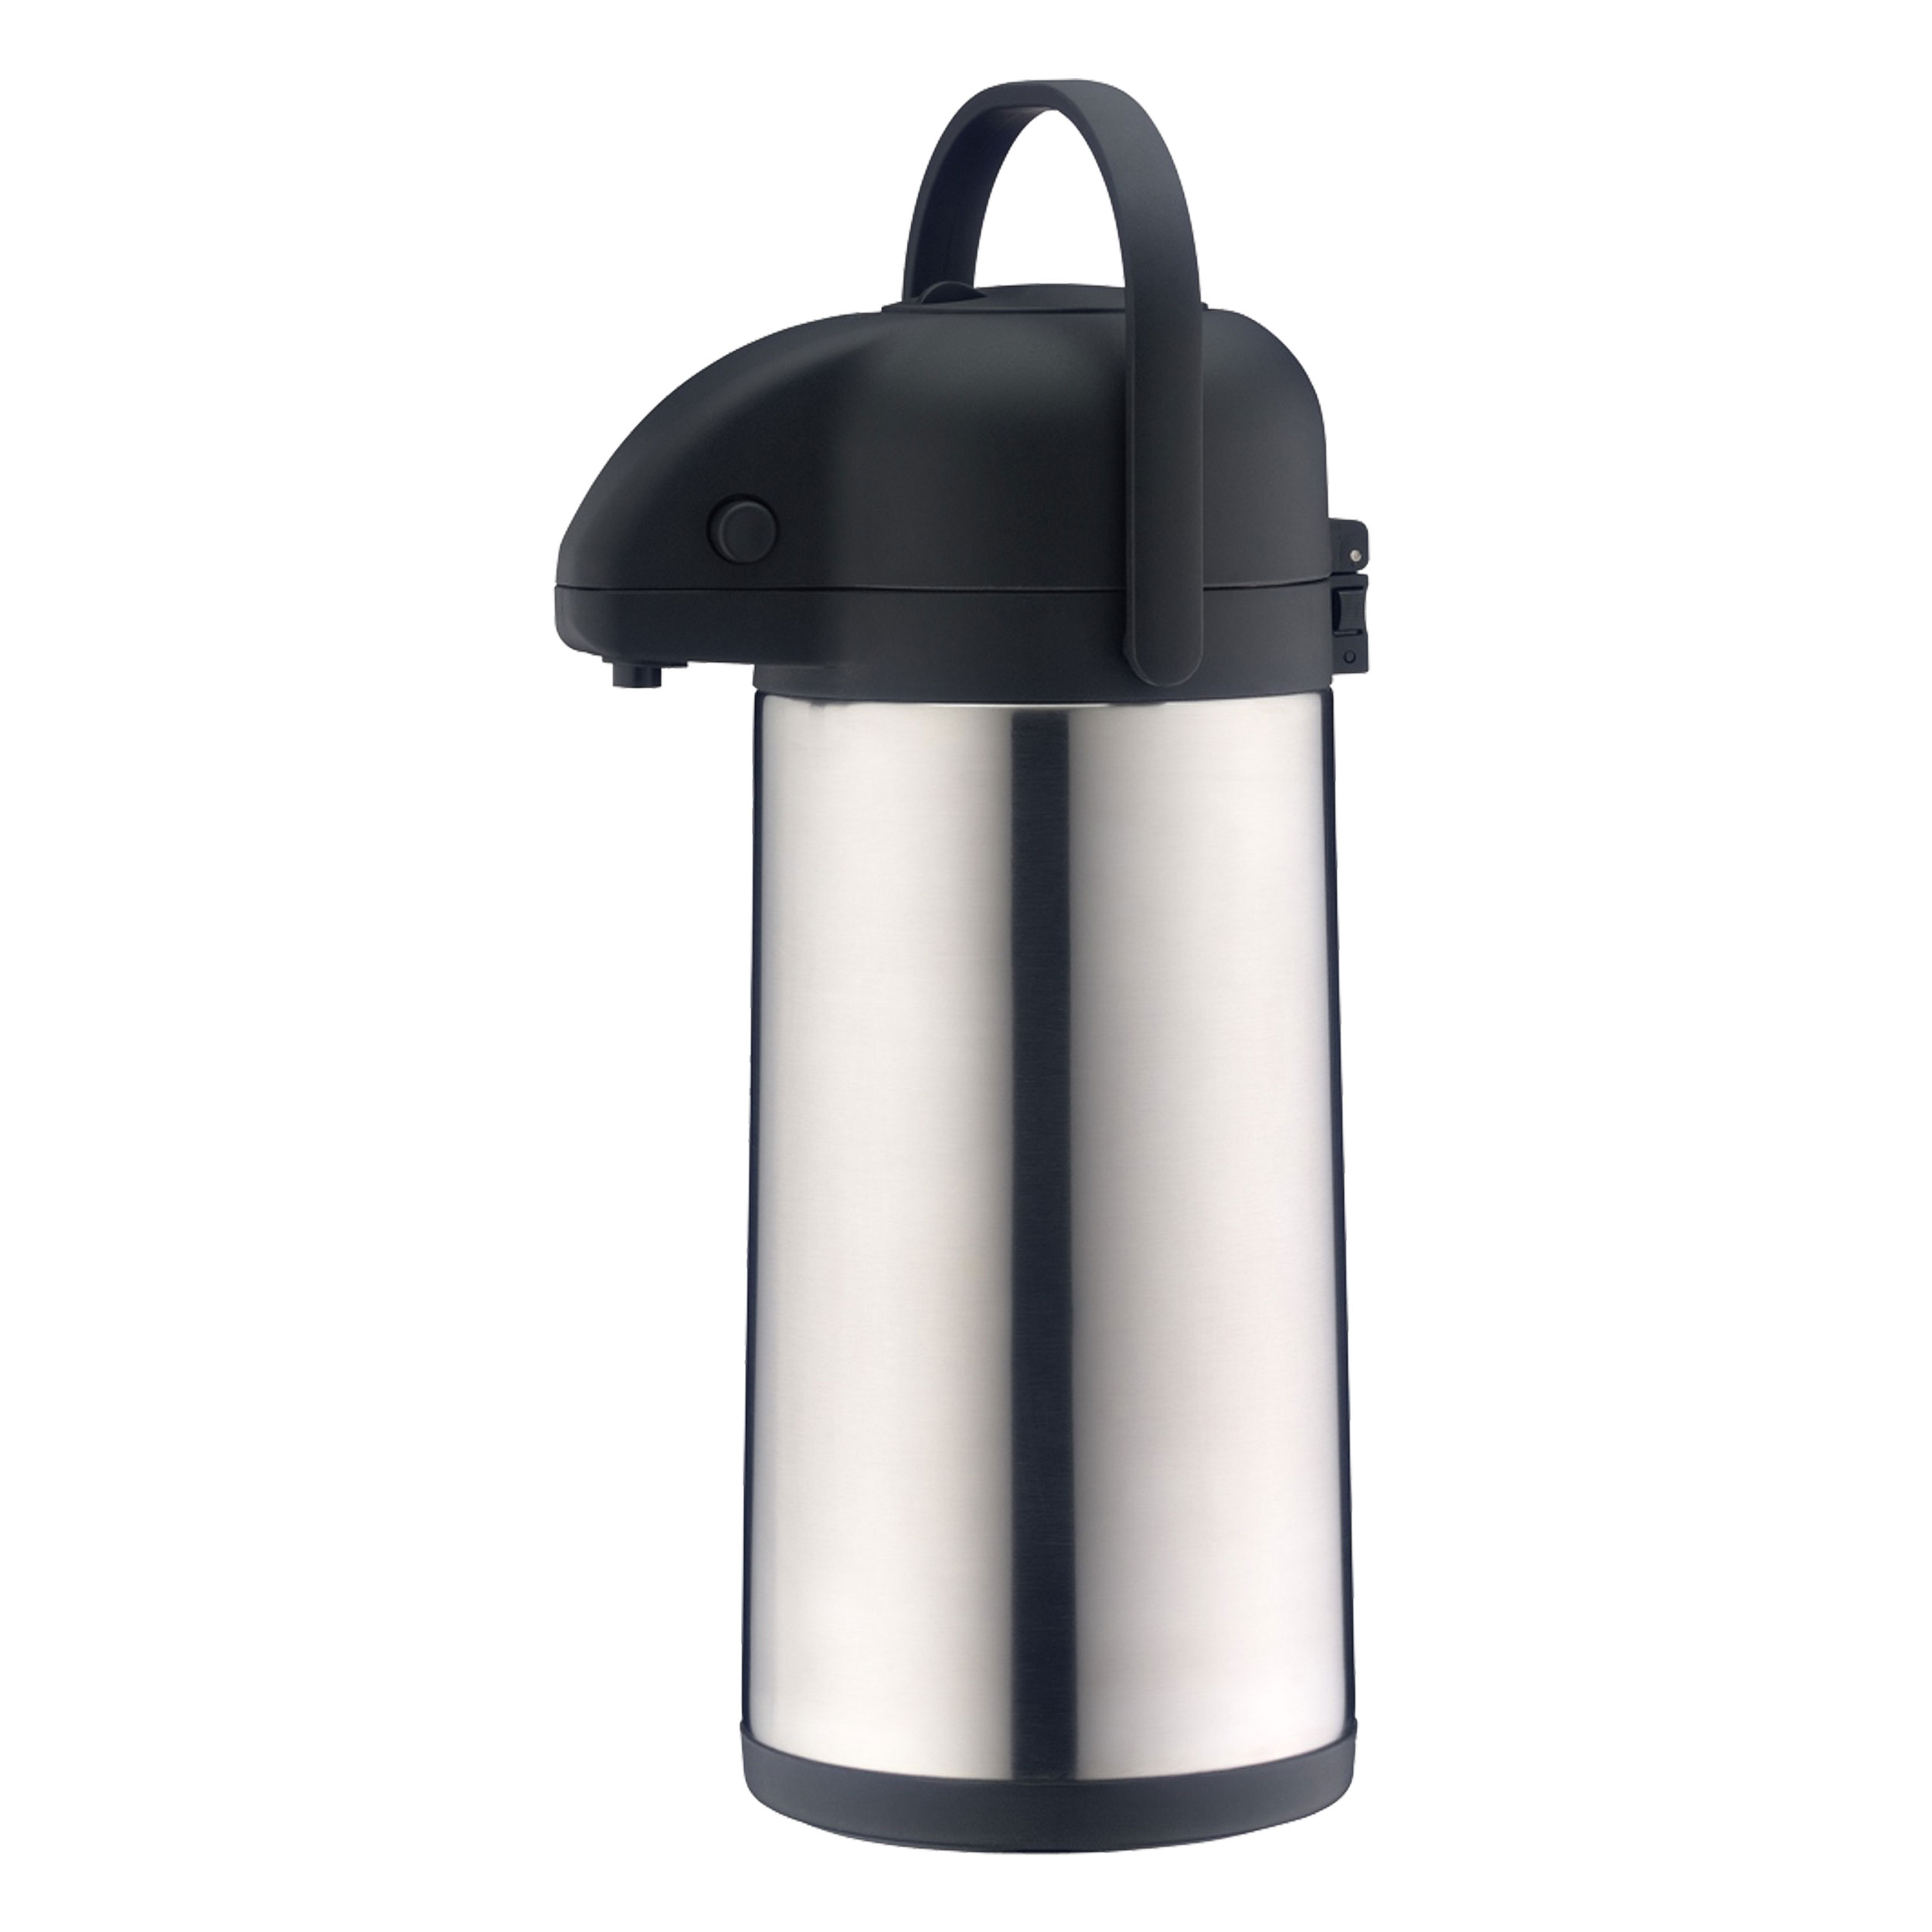 Thermo Pumpkanne Alfi Thermal Jug With Pump Mechanism Tt Drinks Dispenser Thermos Jug Pump Jug Stainless Steel Matted 2 5 L 0837205250 At About Tea De Shop